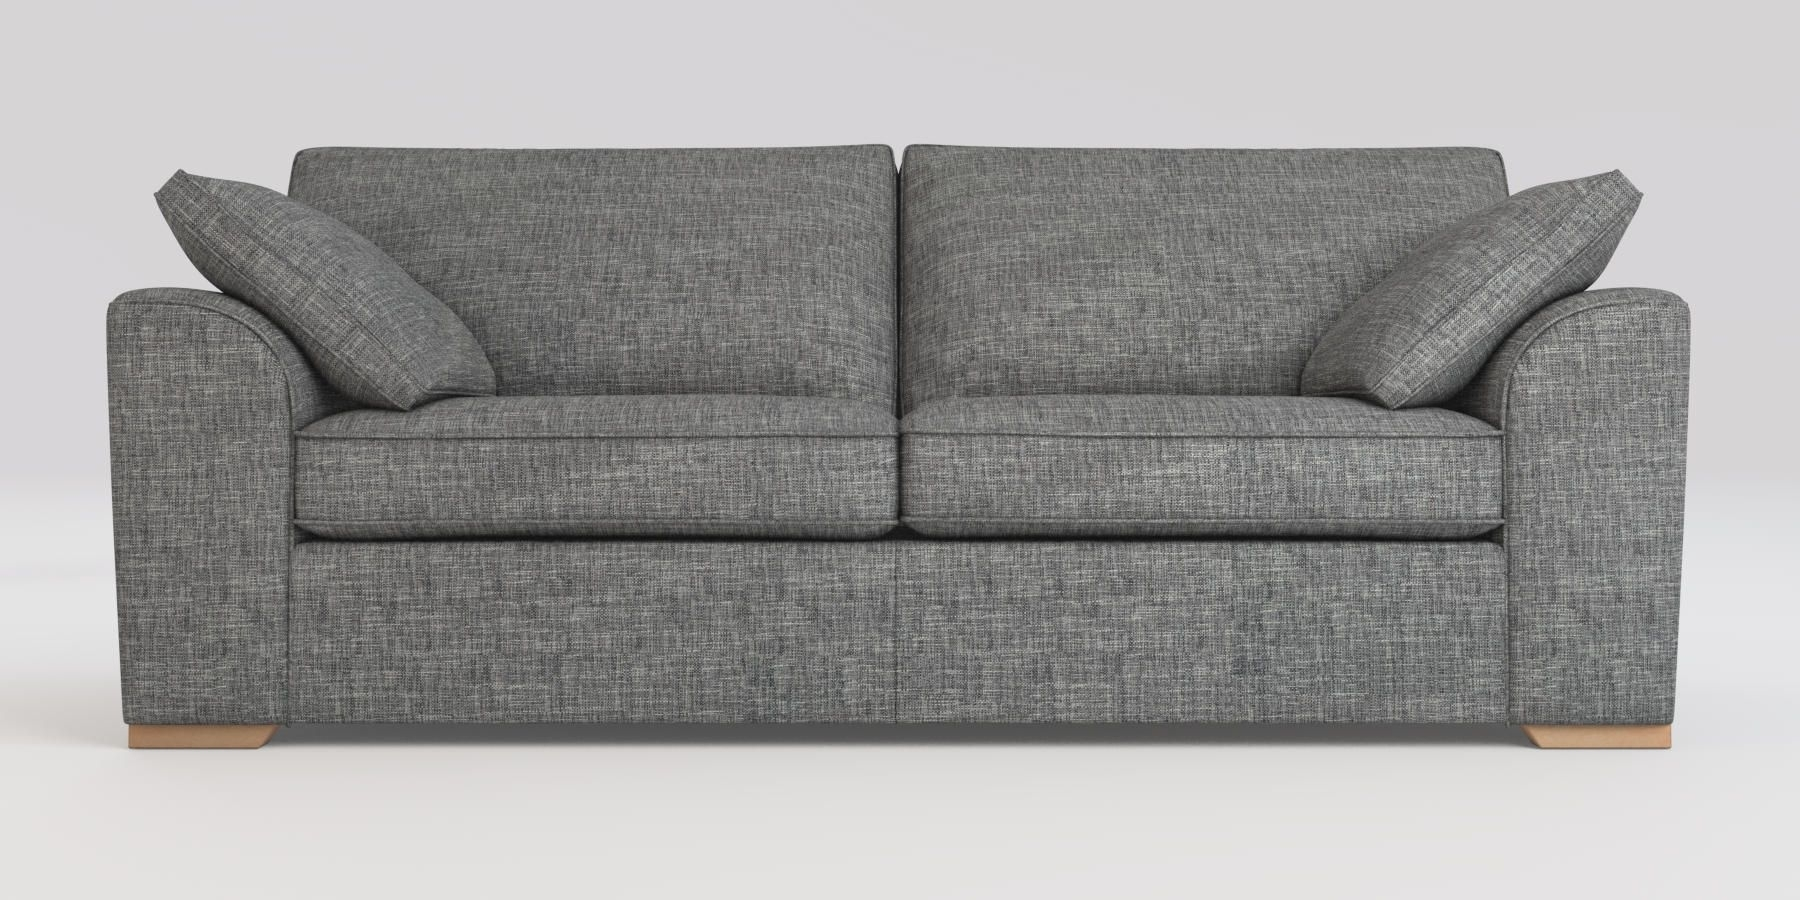 Buy Stamford With Storage Large Sofa (3 Seats) Boucle Weave Dark in Declan 3 Piece Power Reclining Sectionals With Right Facing Console Loveseat (Image 8 of 30)